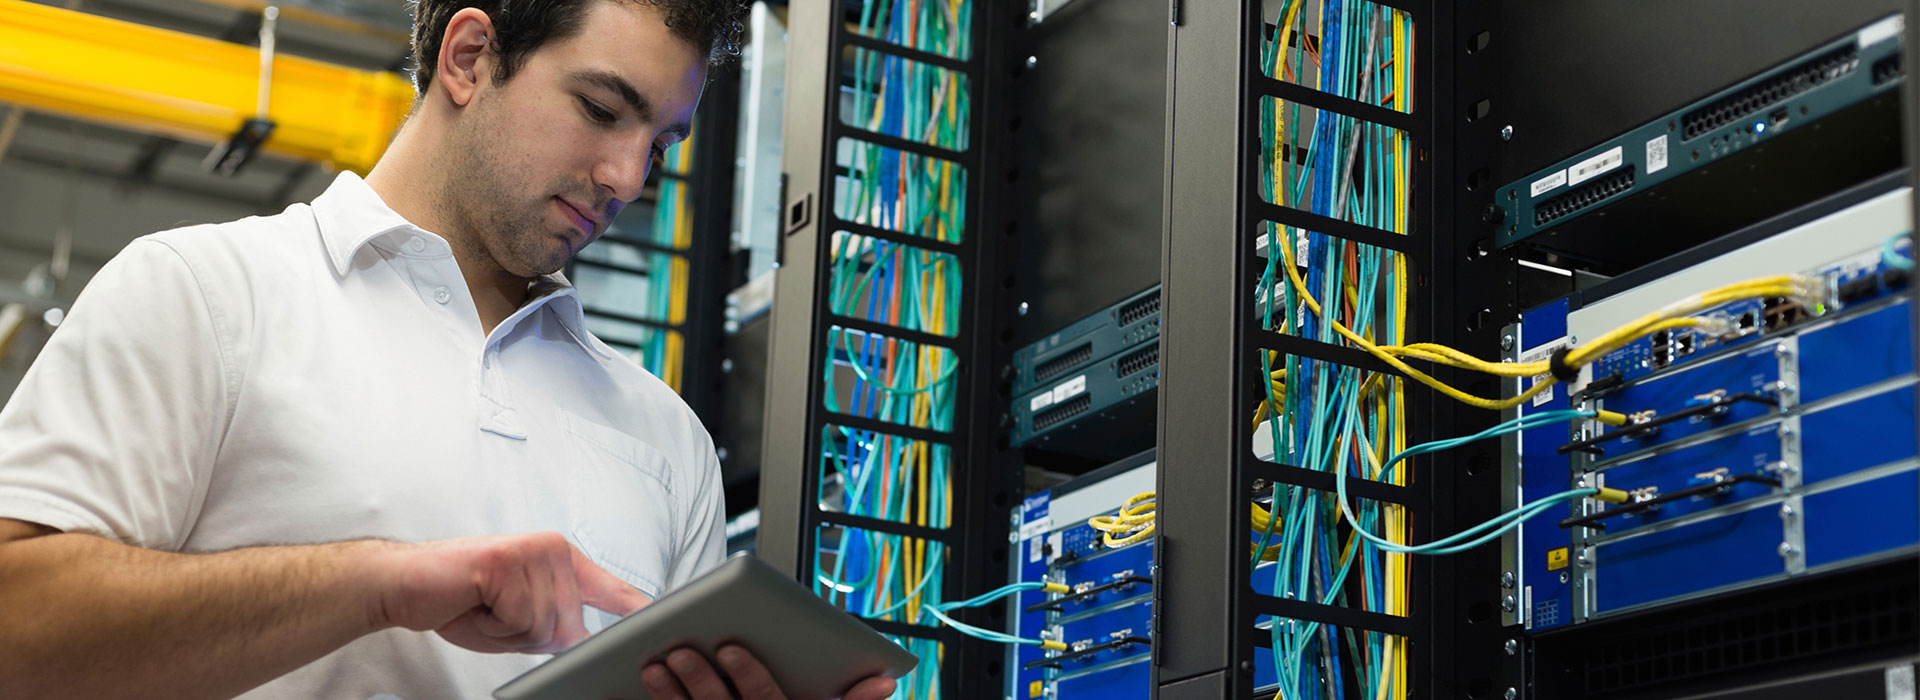 Atlanta IT Company, IT Services and Network Management Services